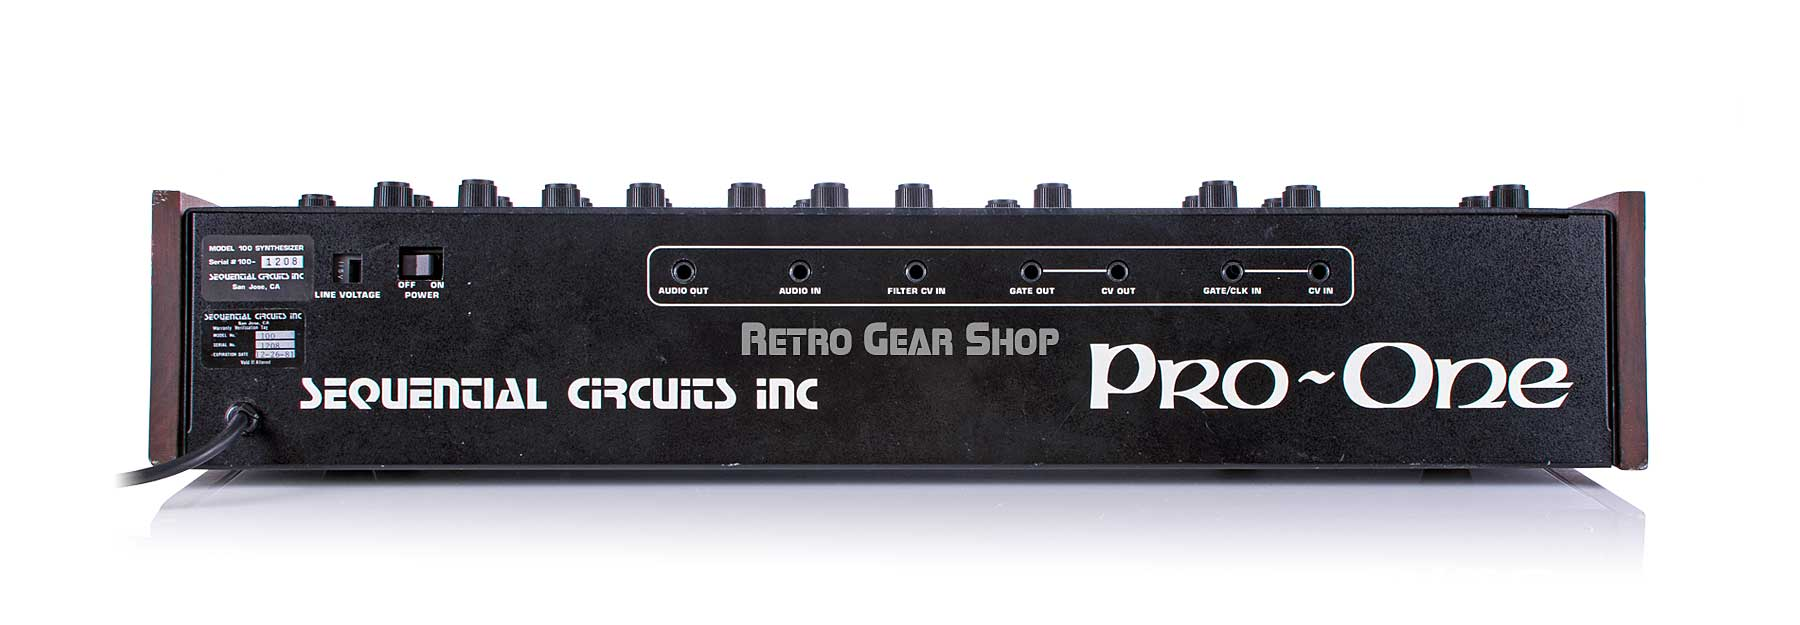 Sequential Circuits Pro One Rear